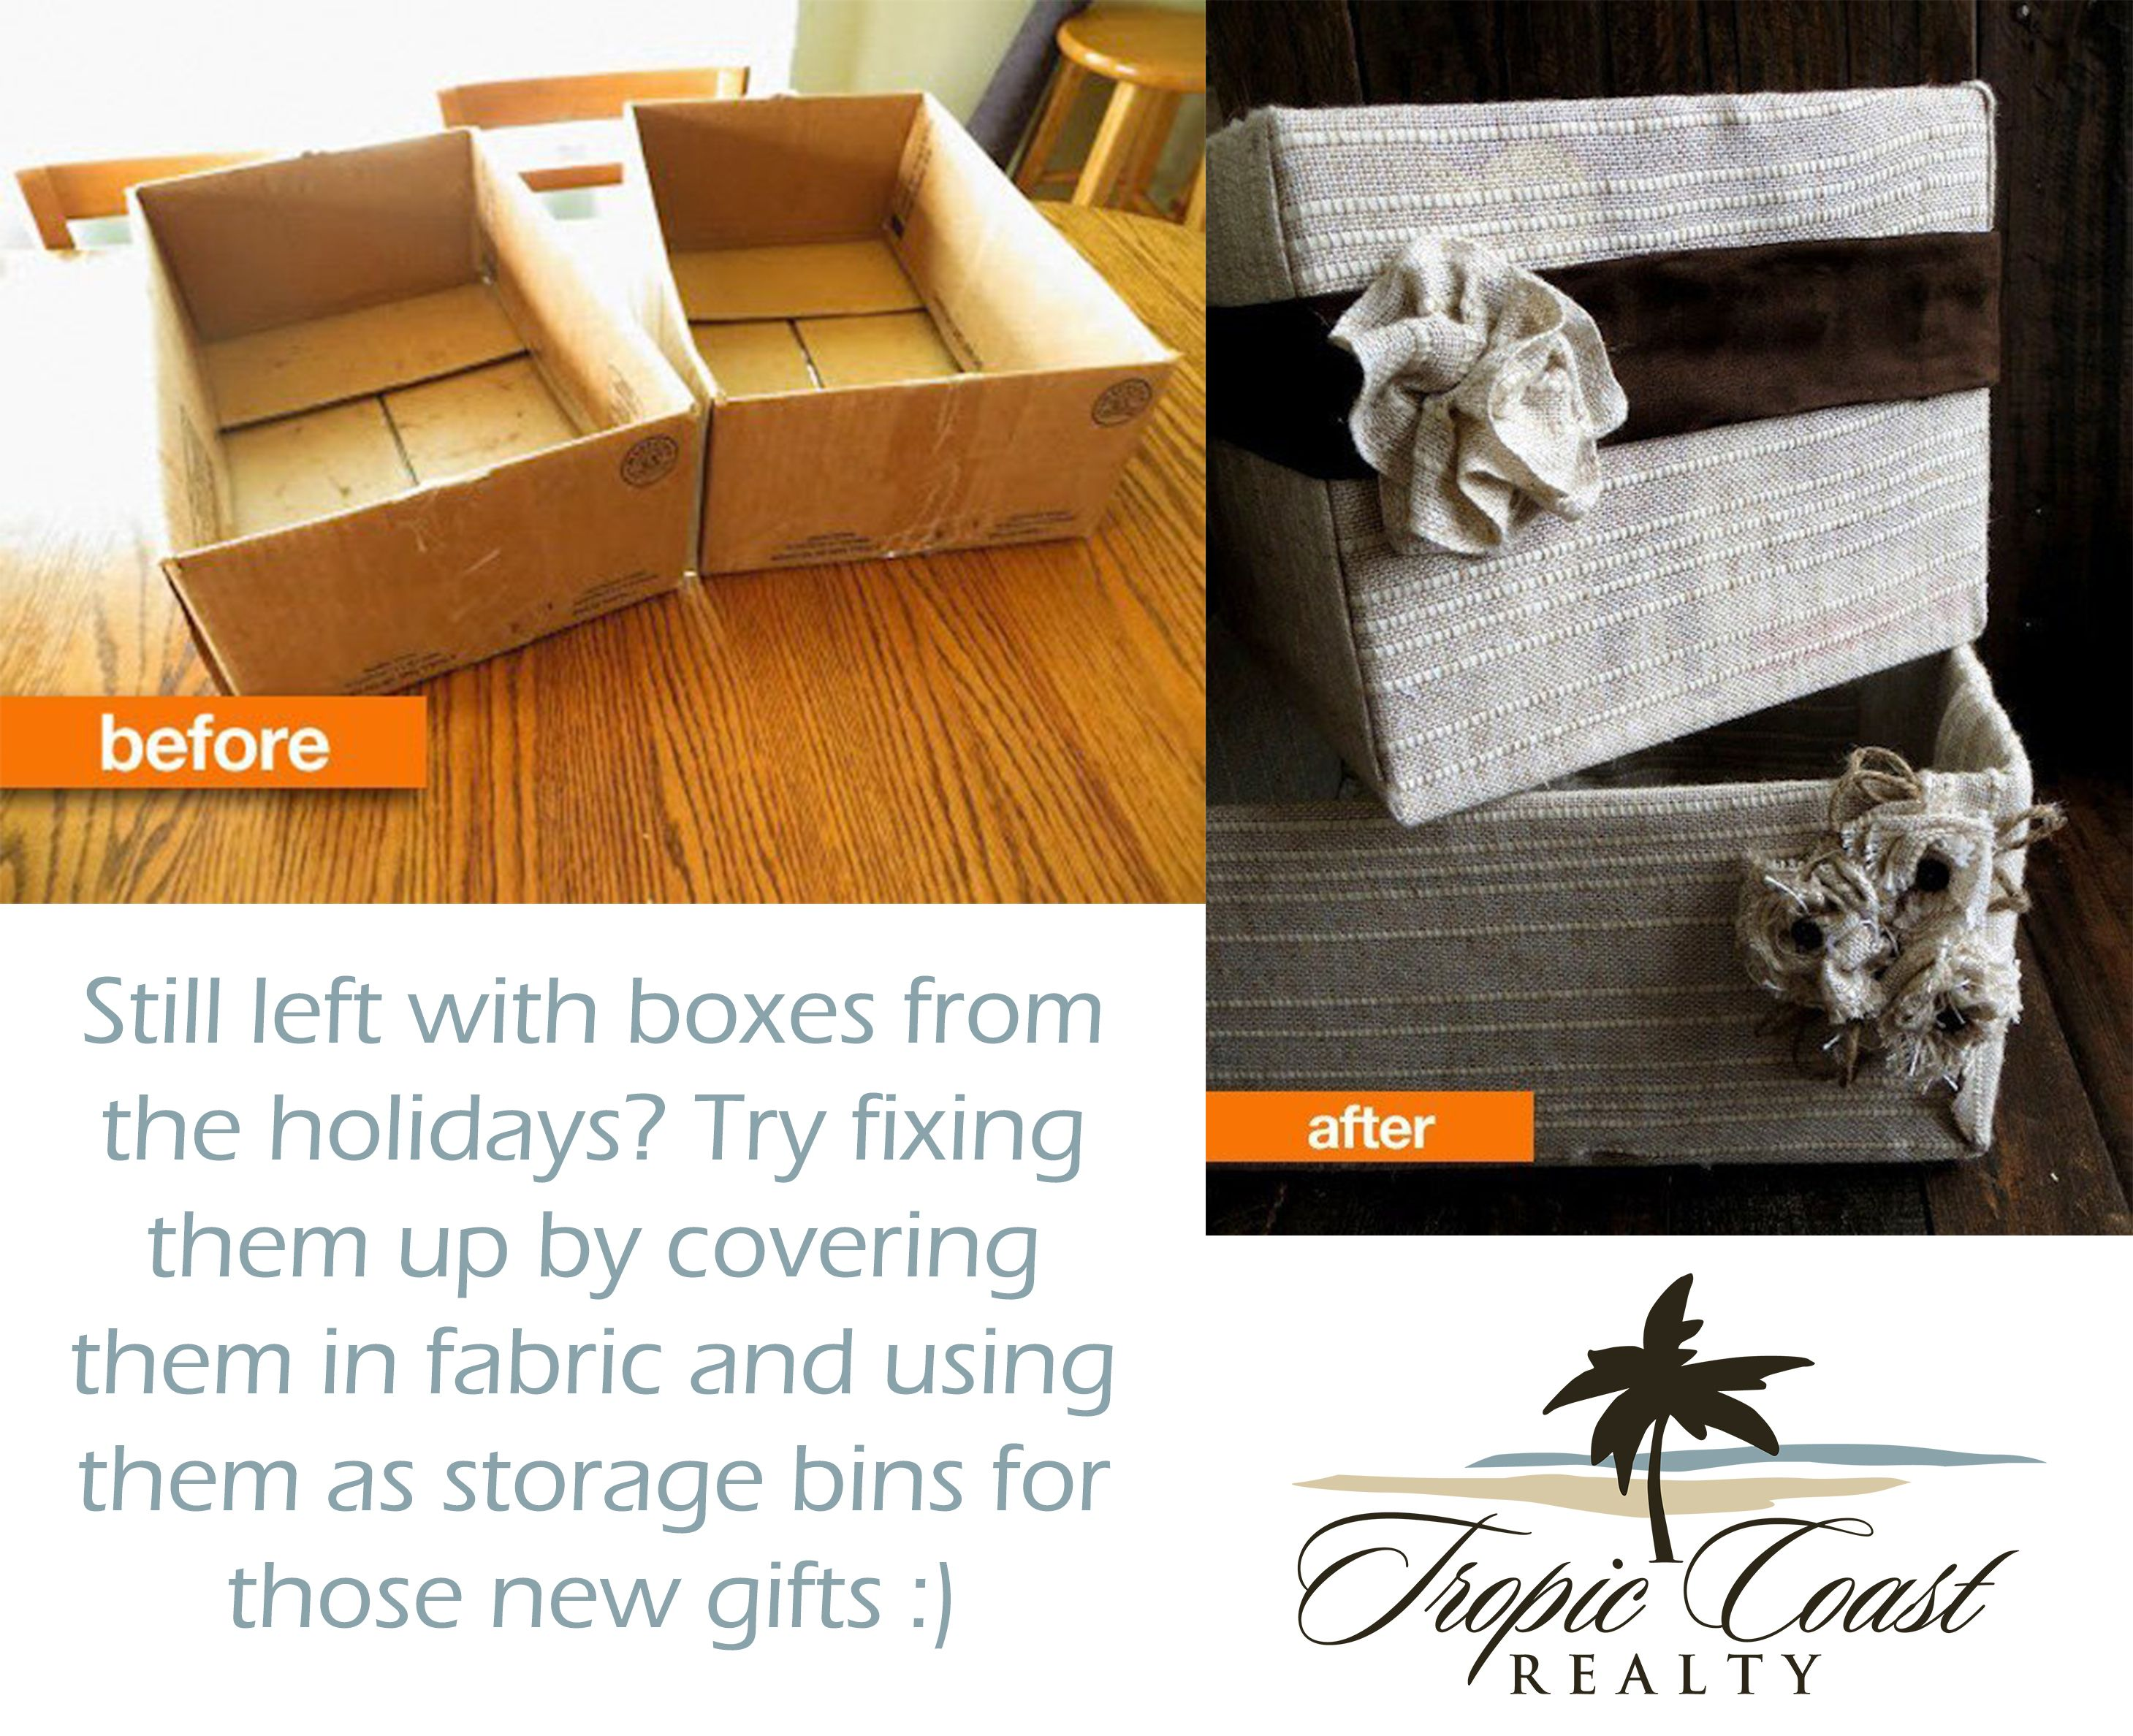 Have any cardboard boxes lying around? #upcycle